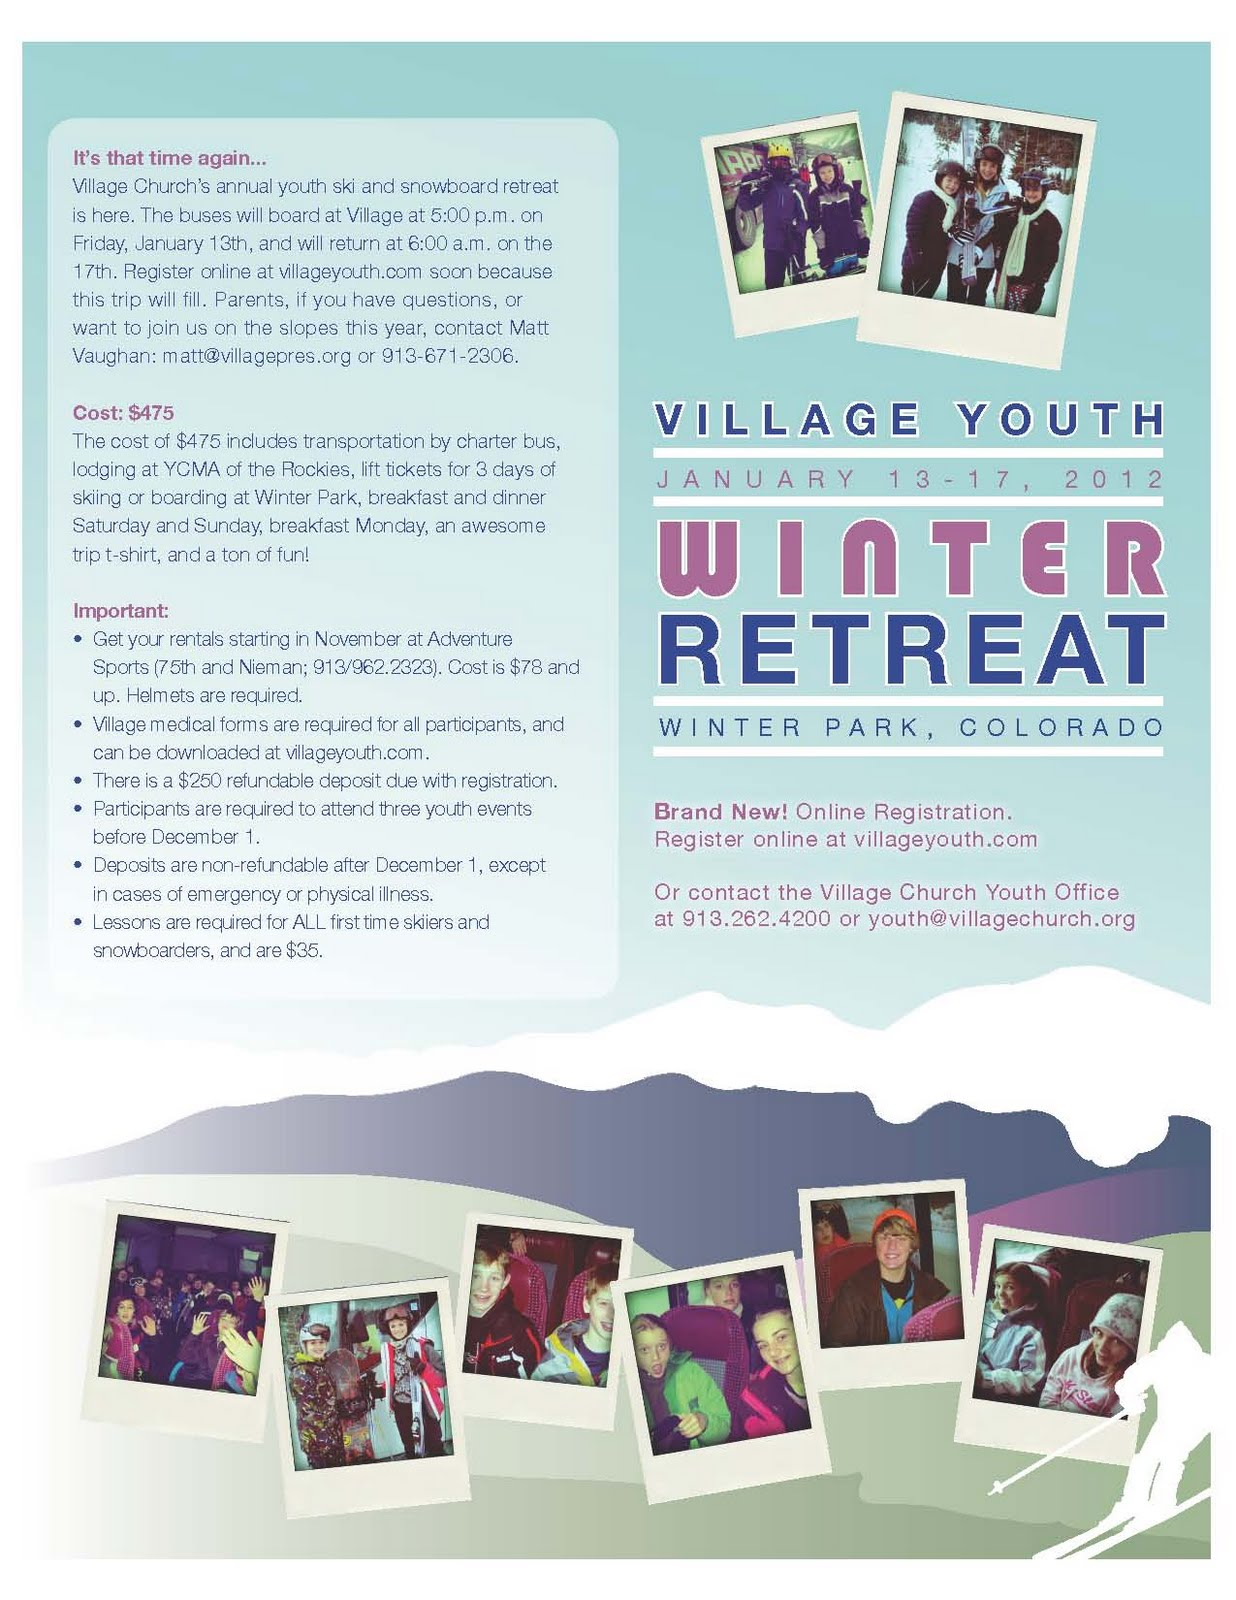 alexander the great youth group flyers some of my latest work for the youth group flyers for our winter retreat to winter park colorado our bump city bonanza and the 2012 mission trip to